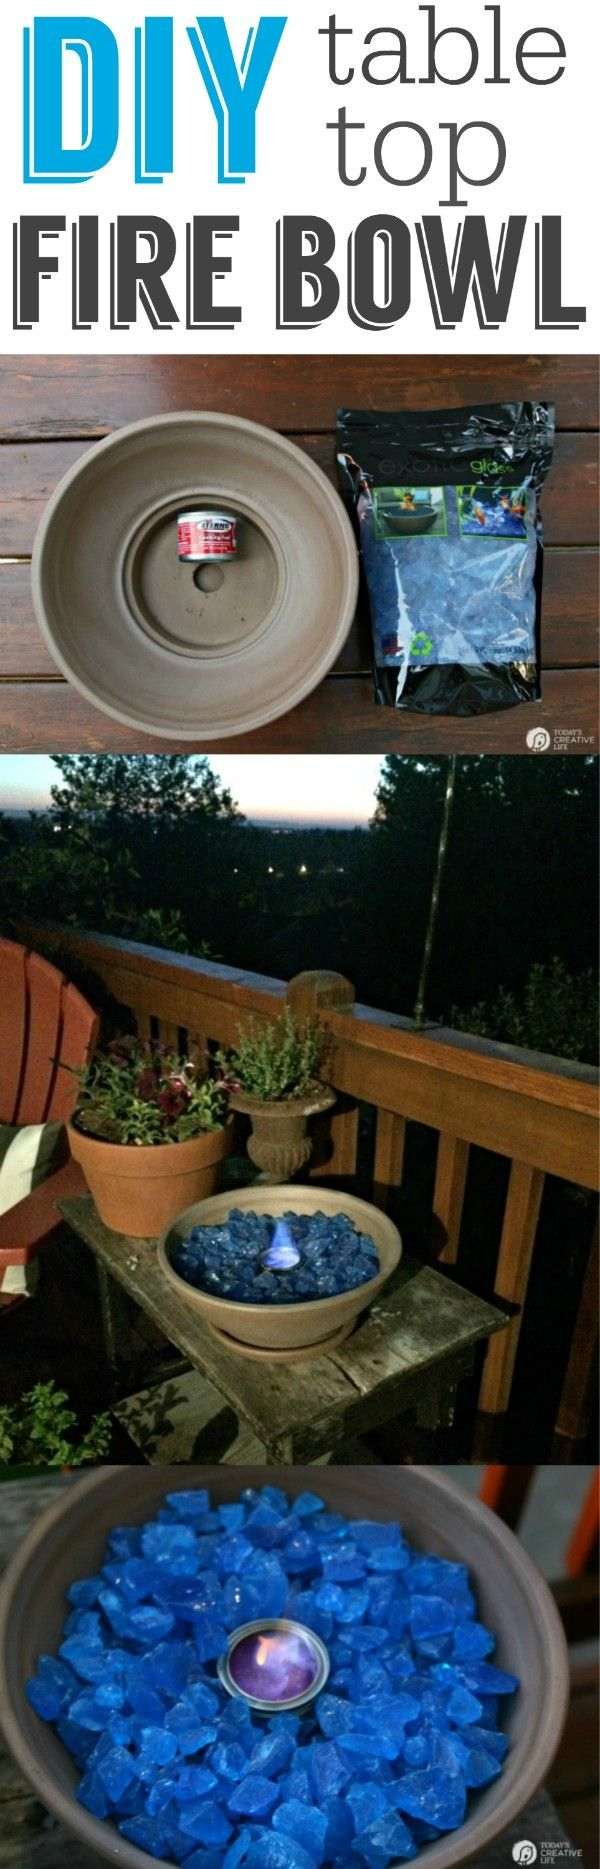 Tabletop Fire Bowl, Tutorial, Fire Bowl, Patio Ideas, Patriotic Decor Ideas, 4th of July, Patriotic Decor, Fourth, Independence Day, Memorial Day, Labor Day, President's Day, Armed Forces Day, Flag Day, Red White & Blue, DIY, American Flag, Home Decor, Entertaining